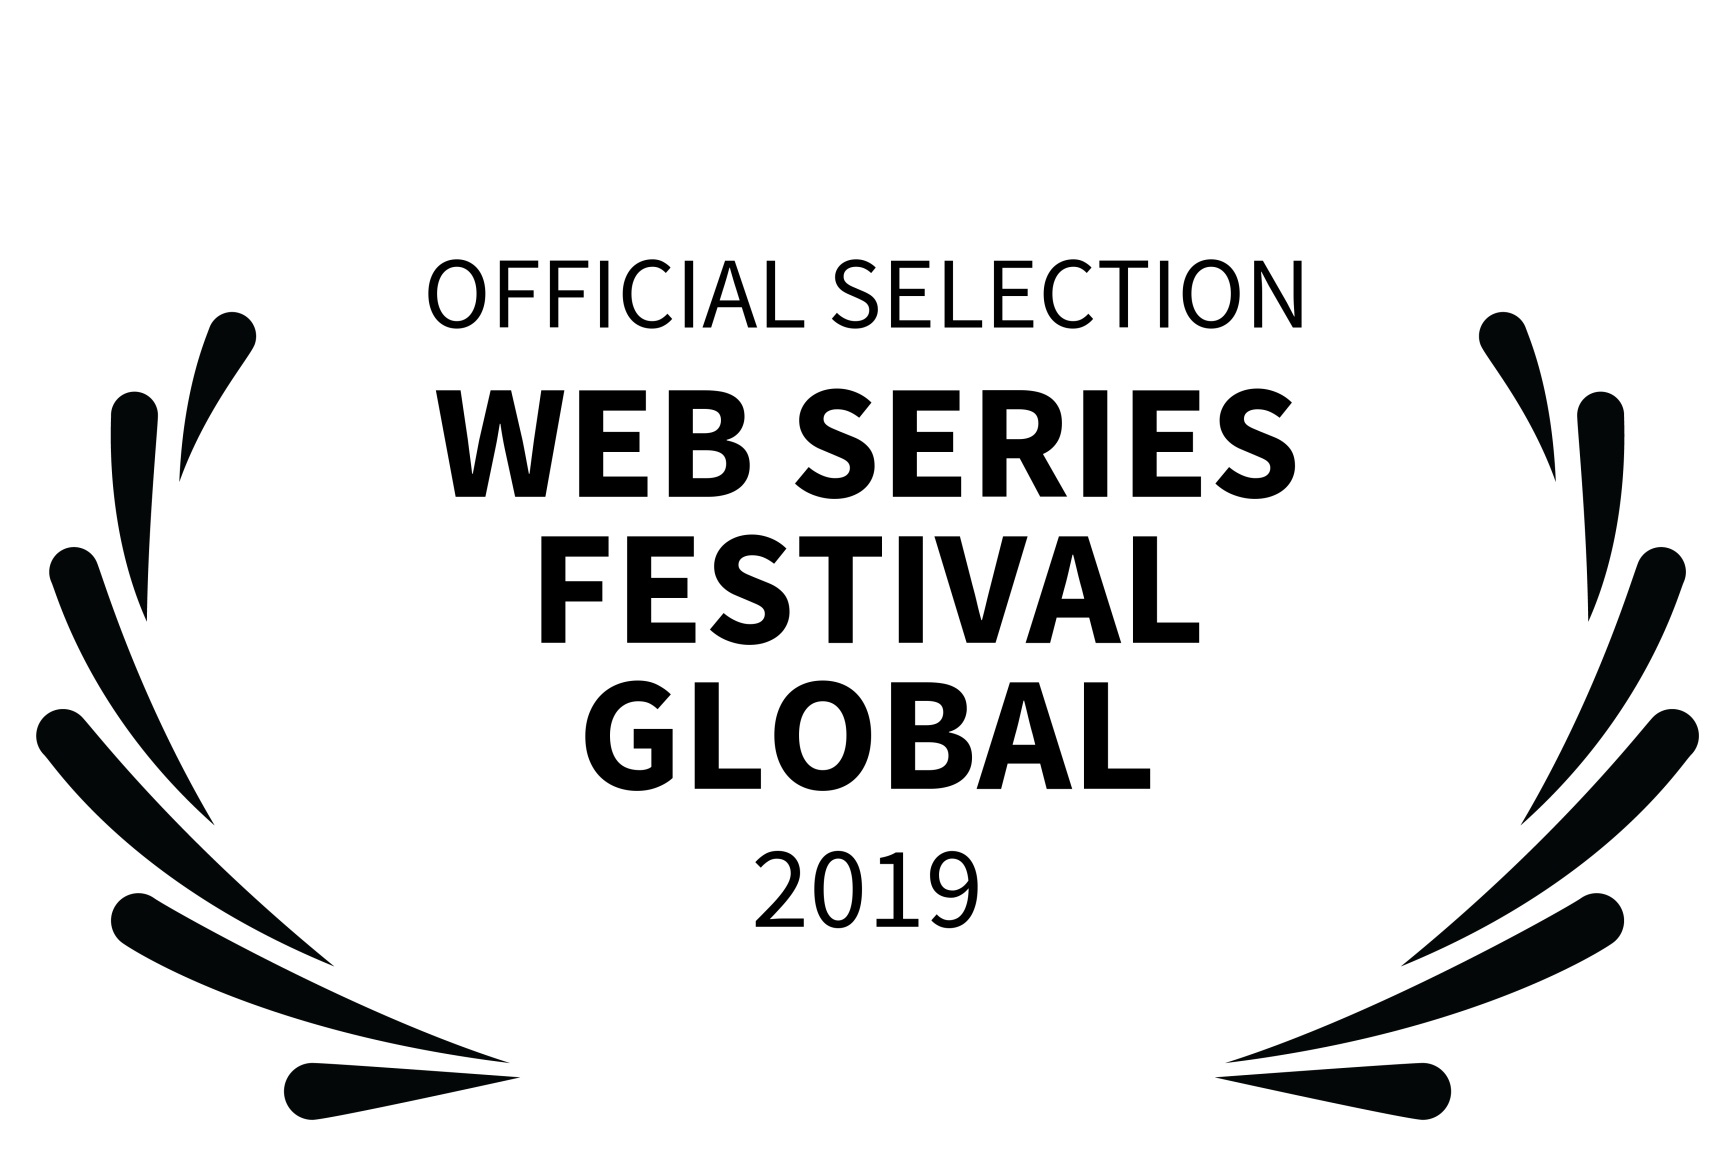 OFFICIAL SELECTION - WEB SERIES FESTIVAL GLOBAL - 2019.png